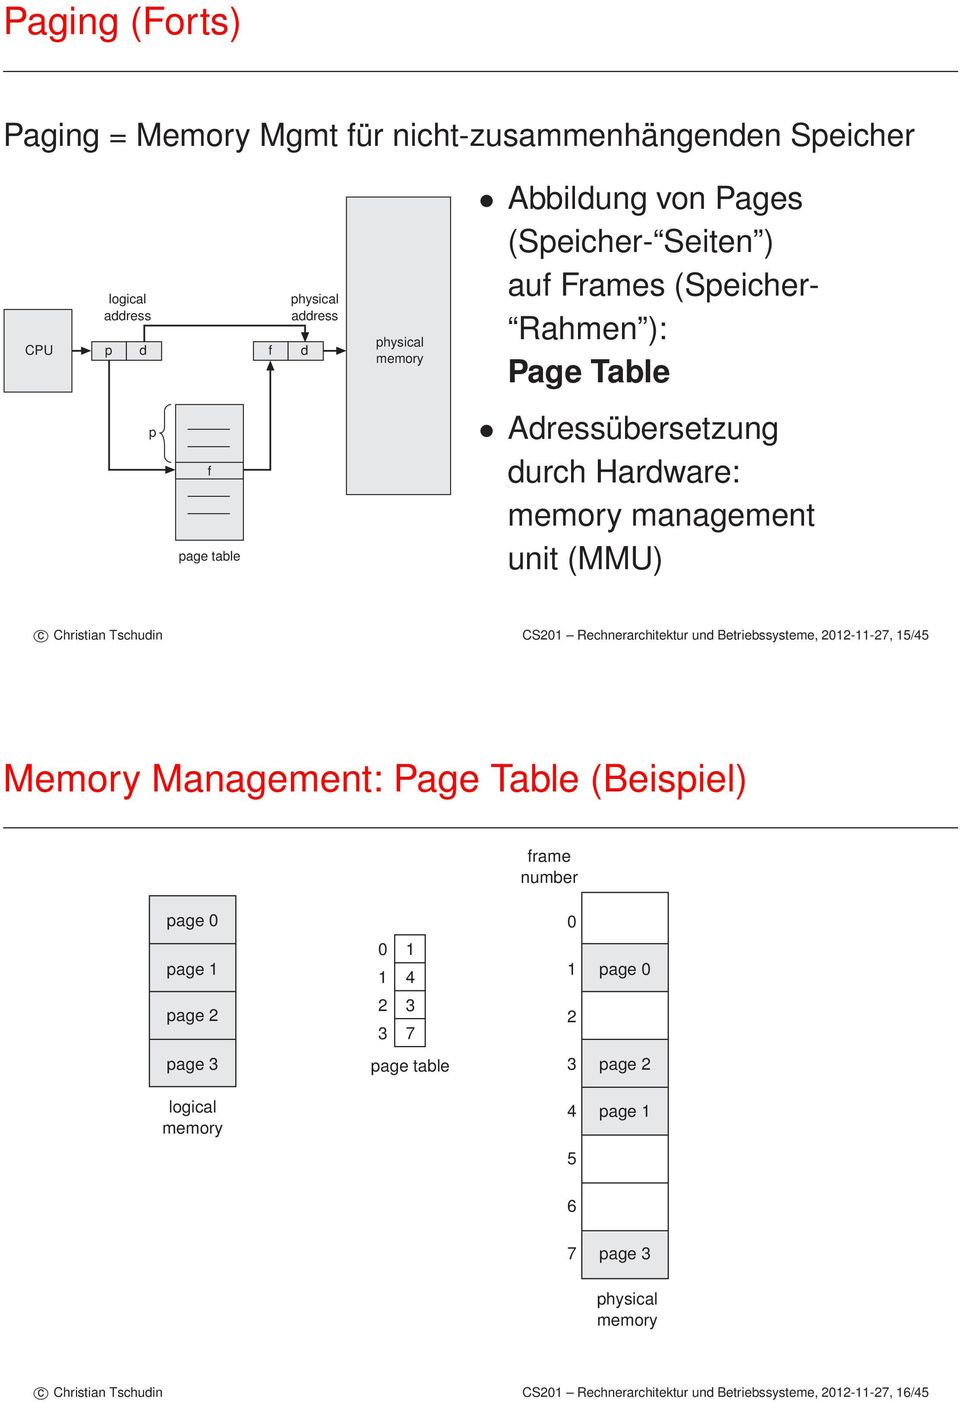 CS201 Rechnerarchitektur und Betriebssysteme, 2012-11-27, 15/45 Memory Management: Page Table (Beispiel) frame number page 0 0 page 1 0 1 1 4 1 page 0 page 2 2 3